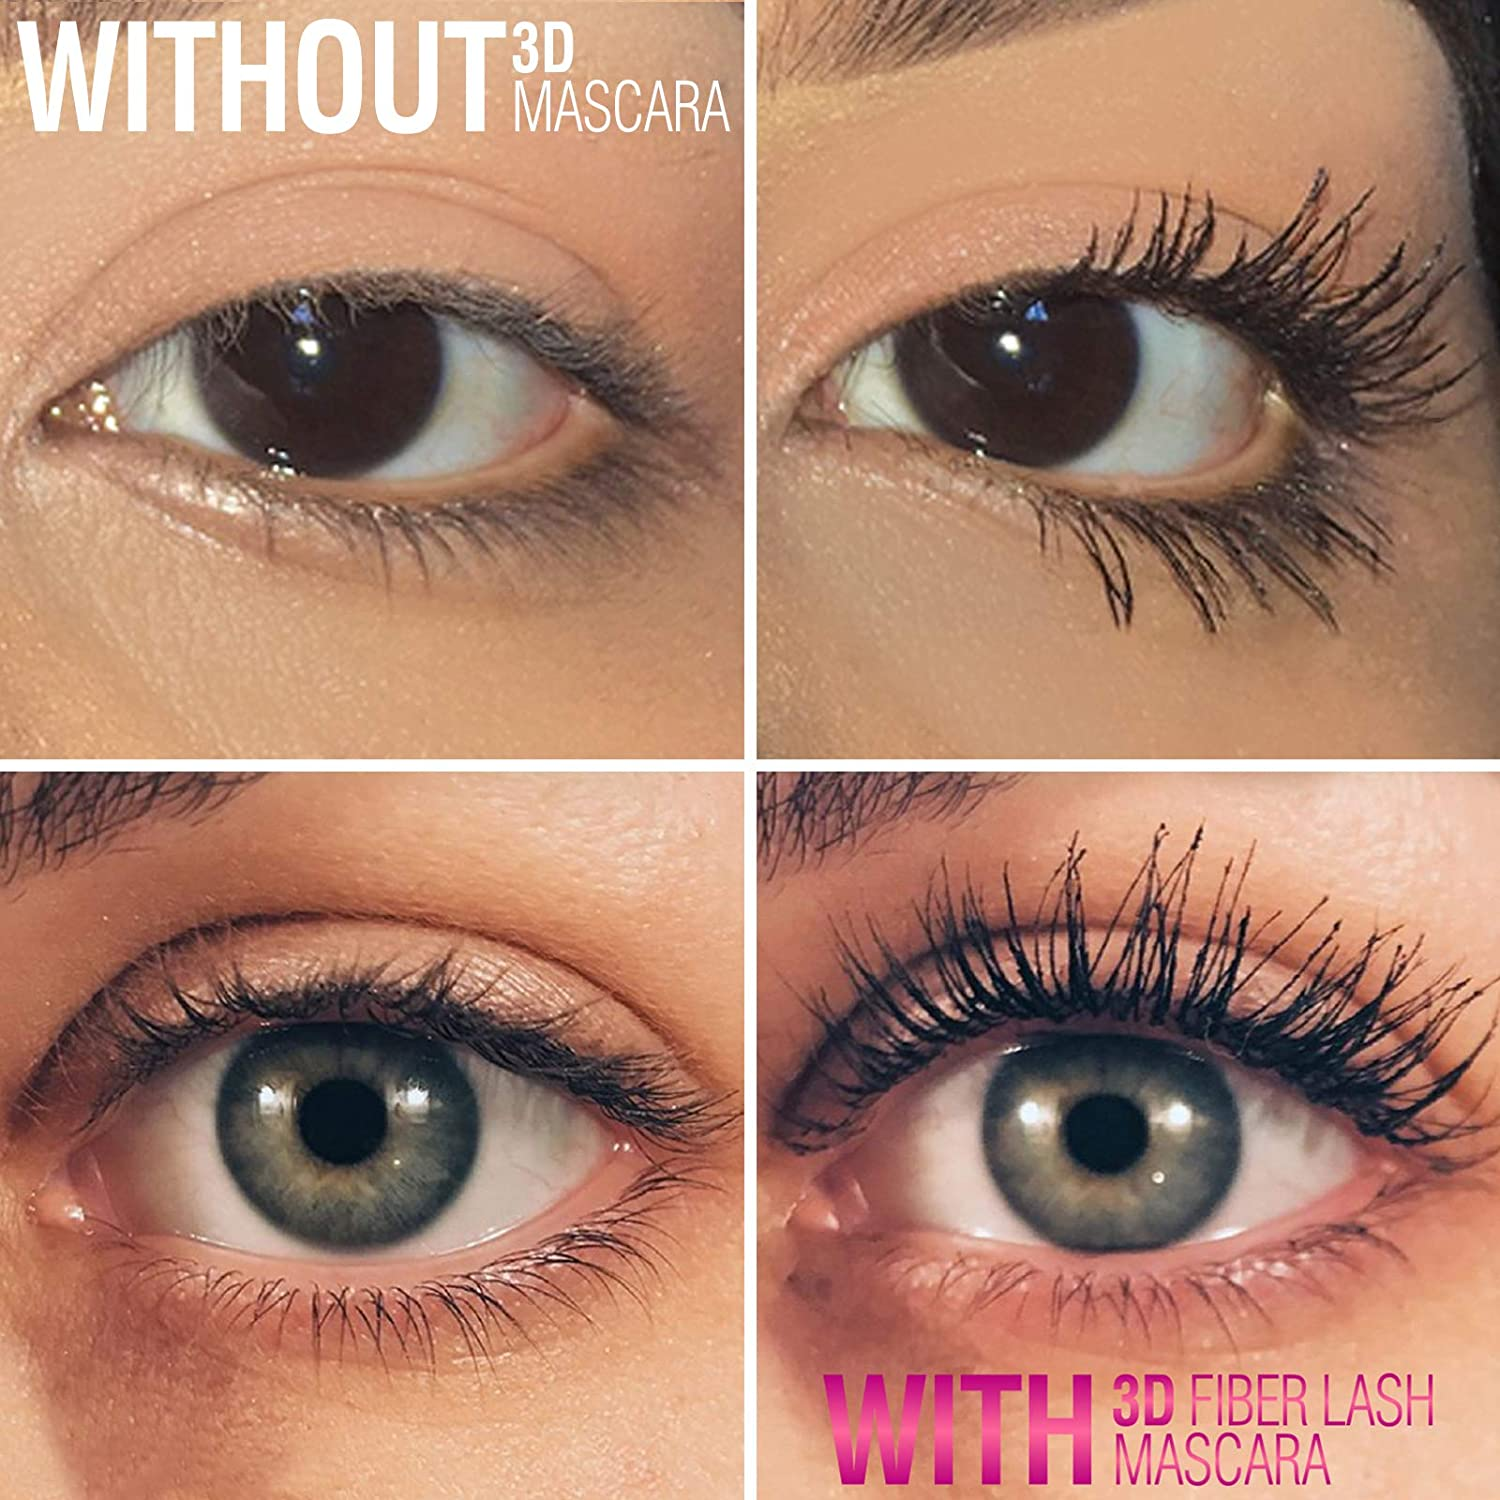 14a19242794 Amazon.com : 400X Silk Fiber Lash Mascara by Mia Adora - Best Way to Add  Volume & Length to Your Natural Eyelashes Instantly - Waterproof  Smudge-proof ...